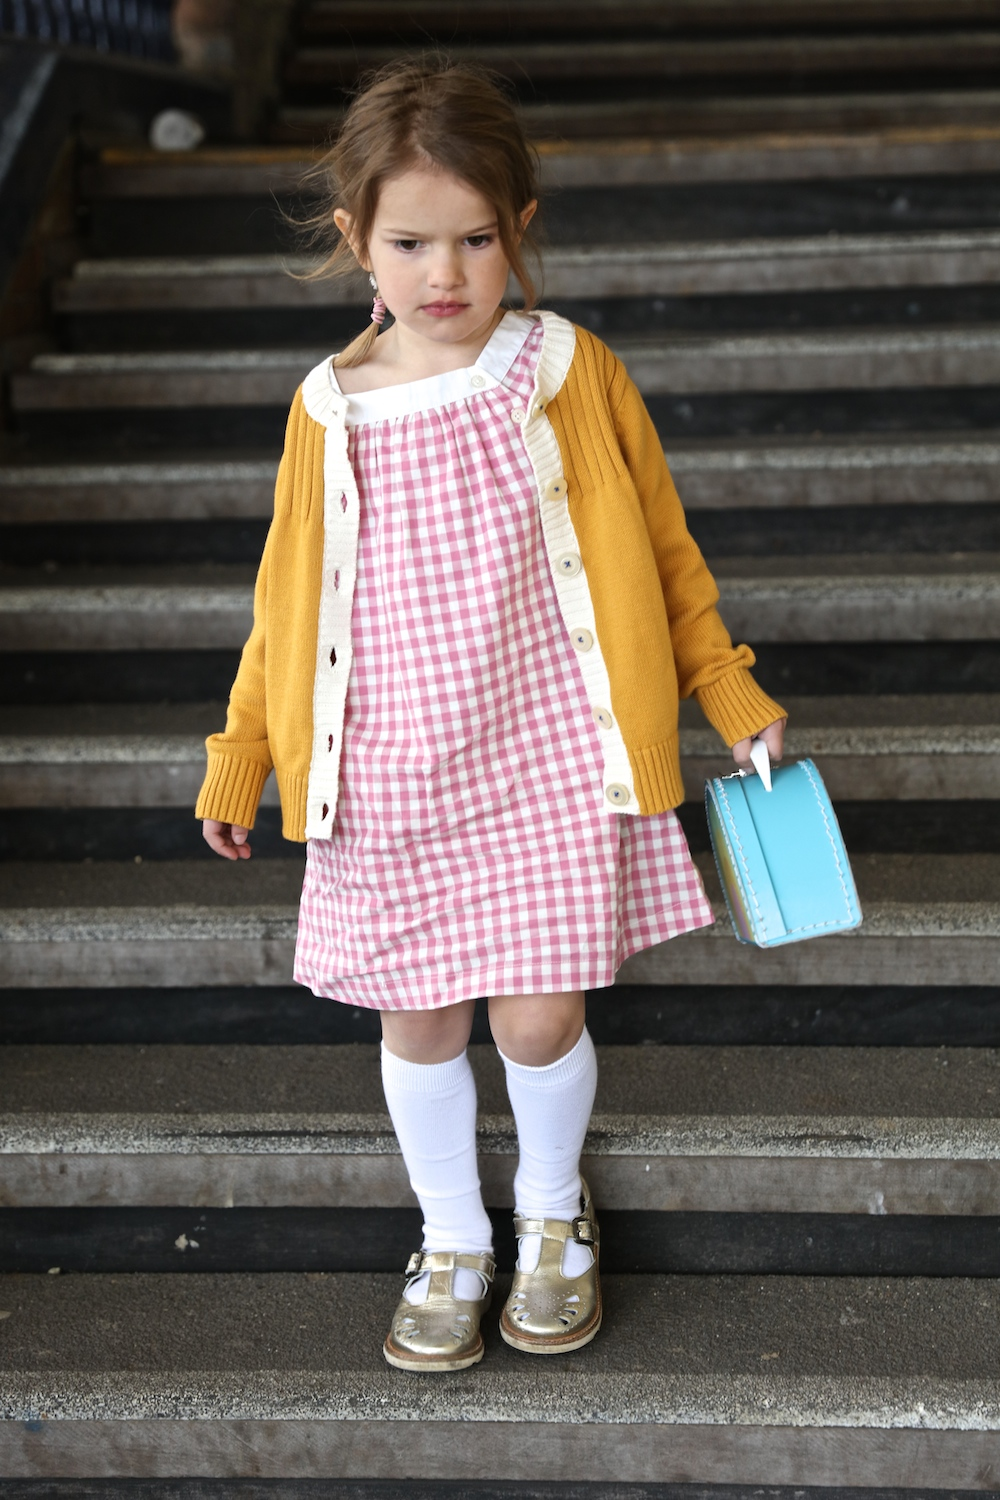 Chloeuberkid_Olive_Juice_socks_dress_cardigan